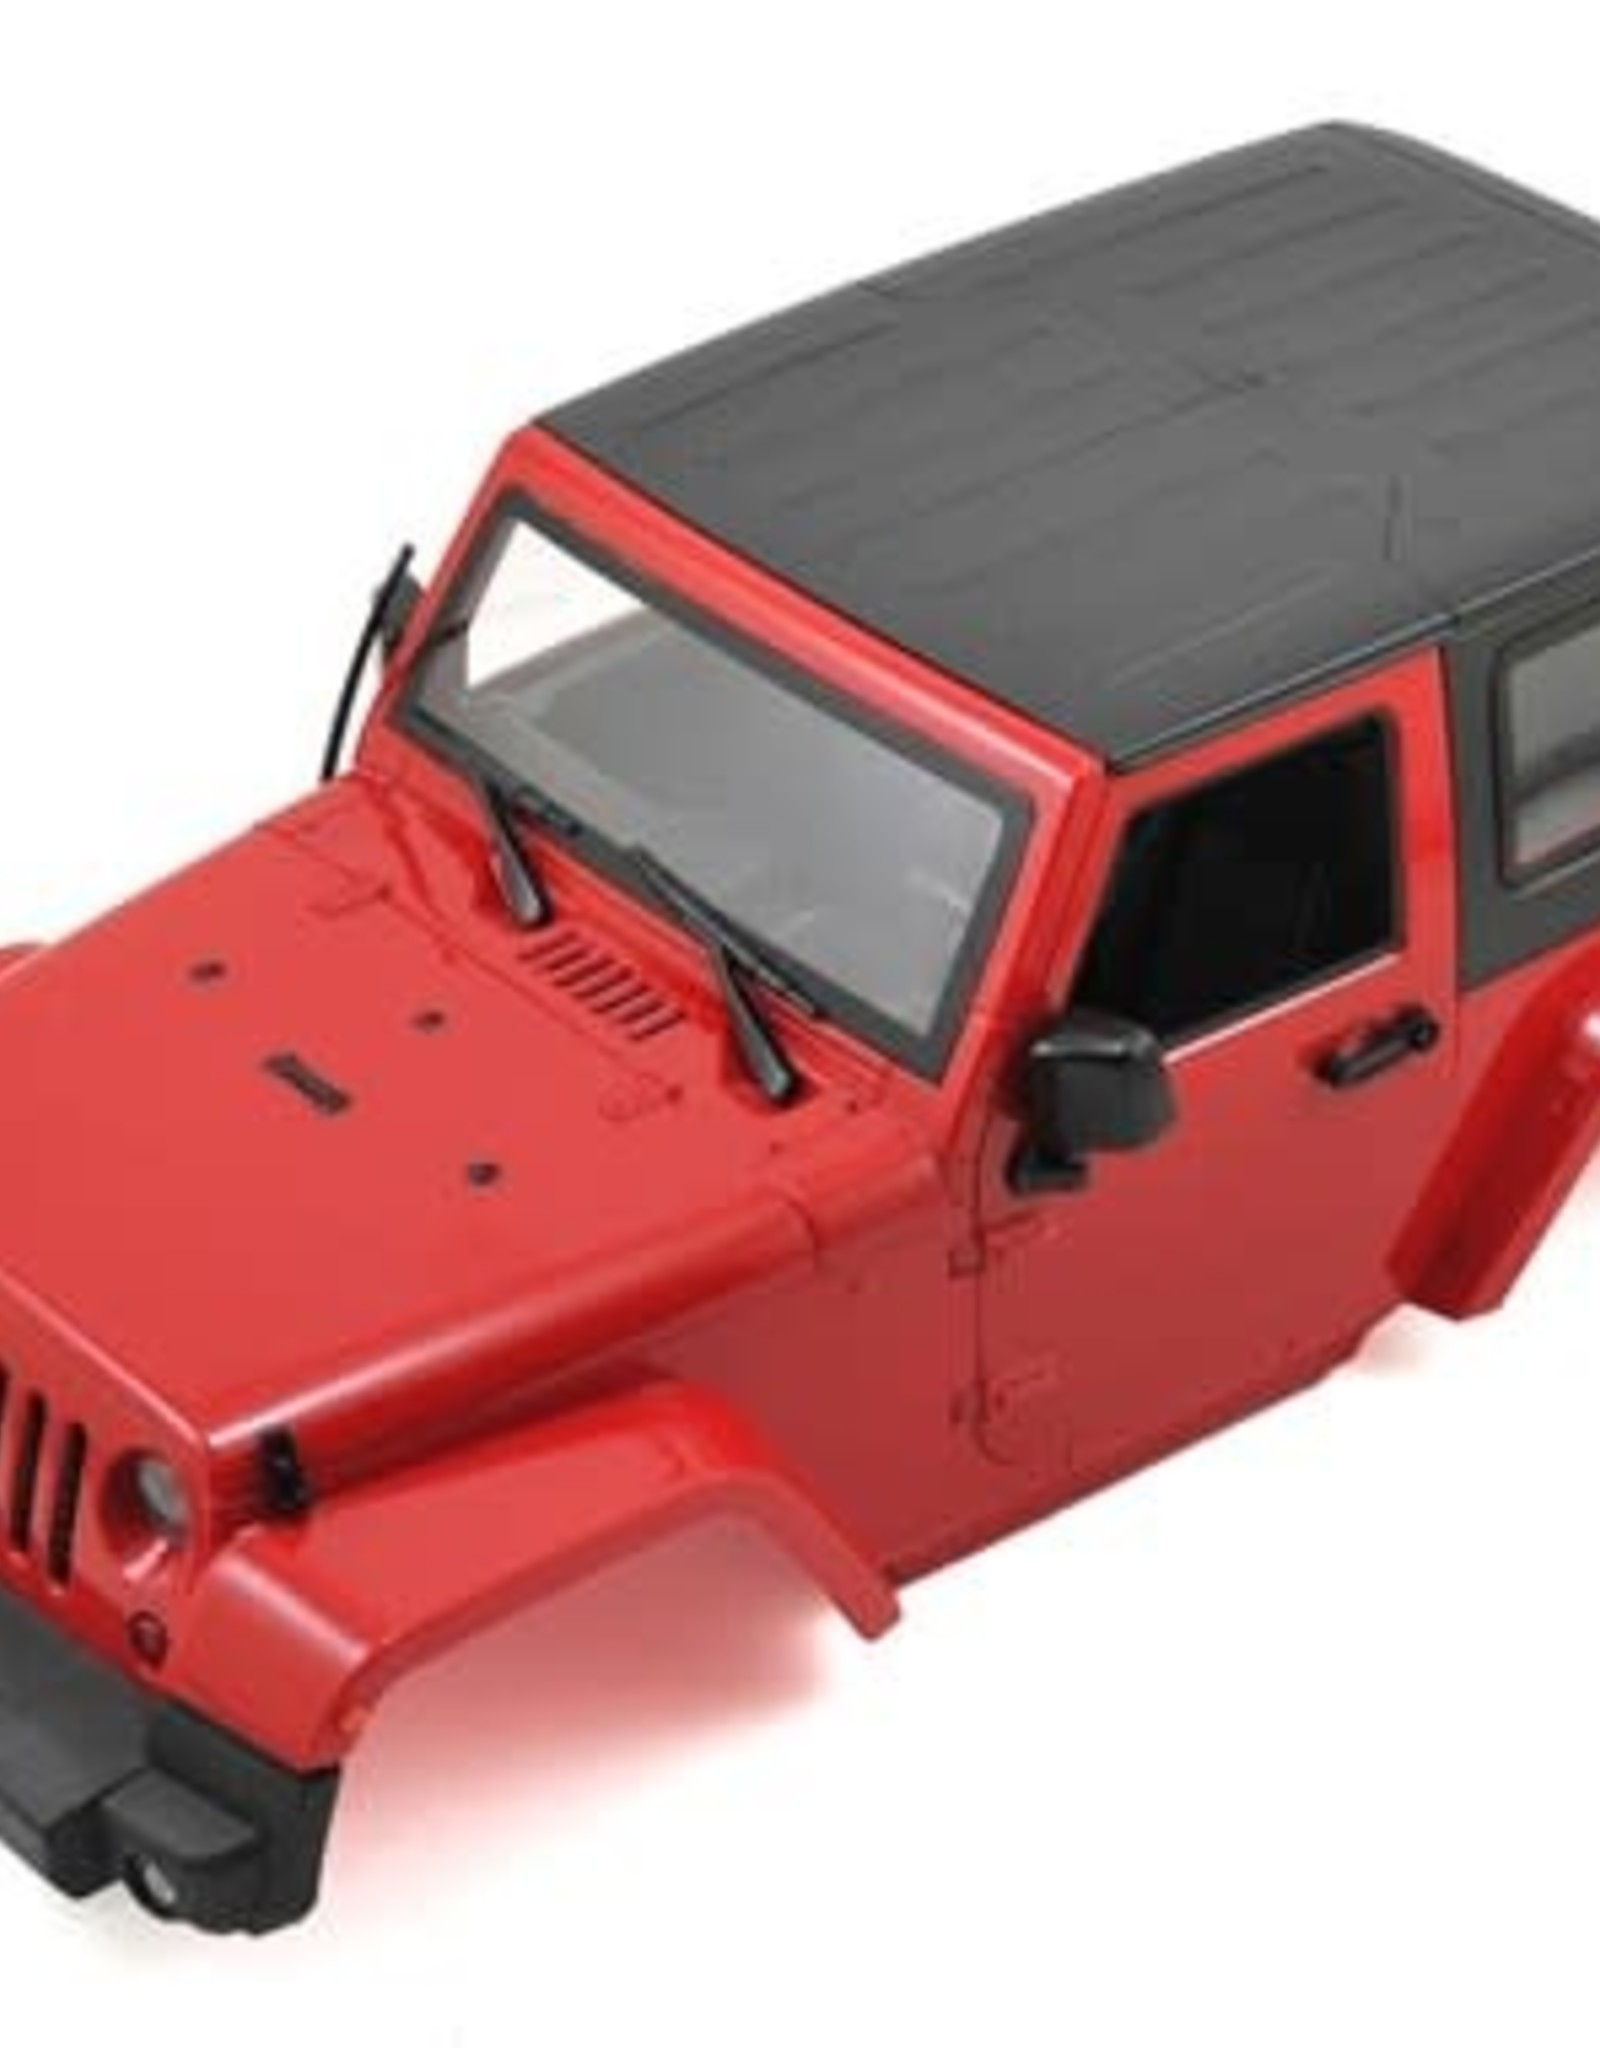 Xtra Speed Xtra Speed 1/10 Plastic Hardtop Scale Crawler Hard Body (Red) (275mm)